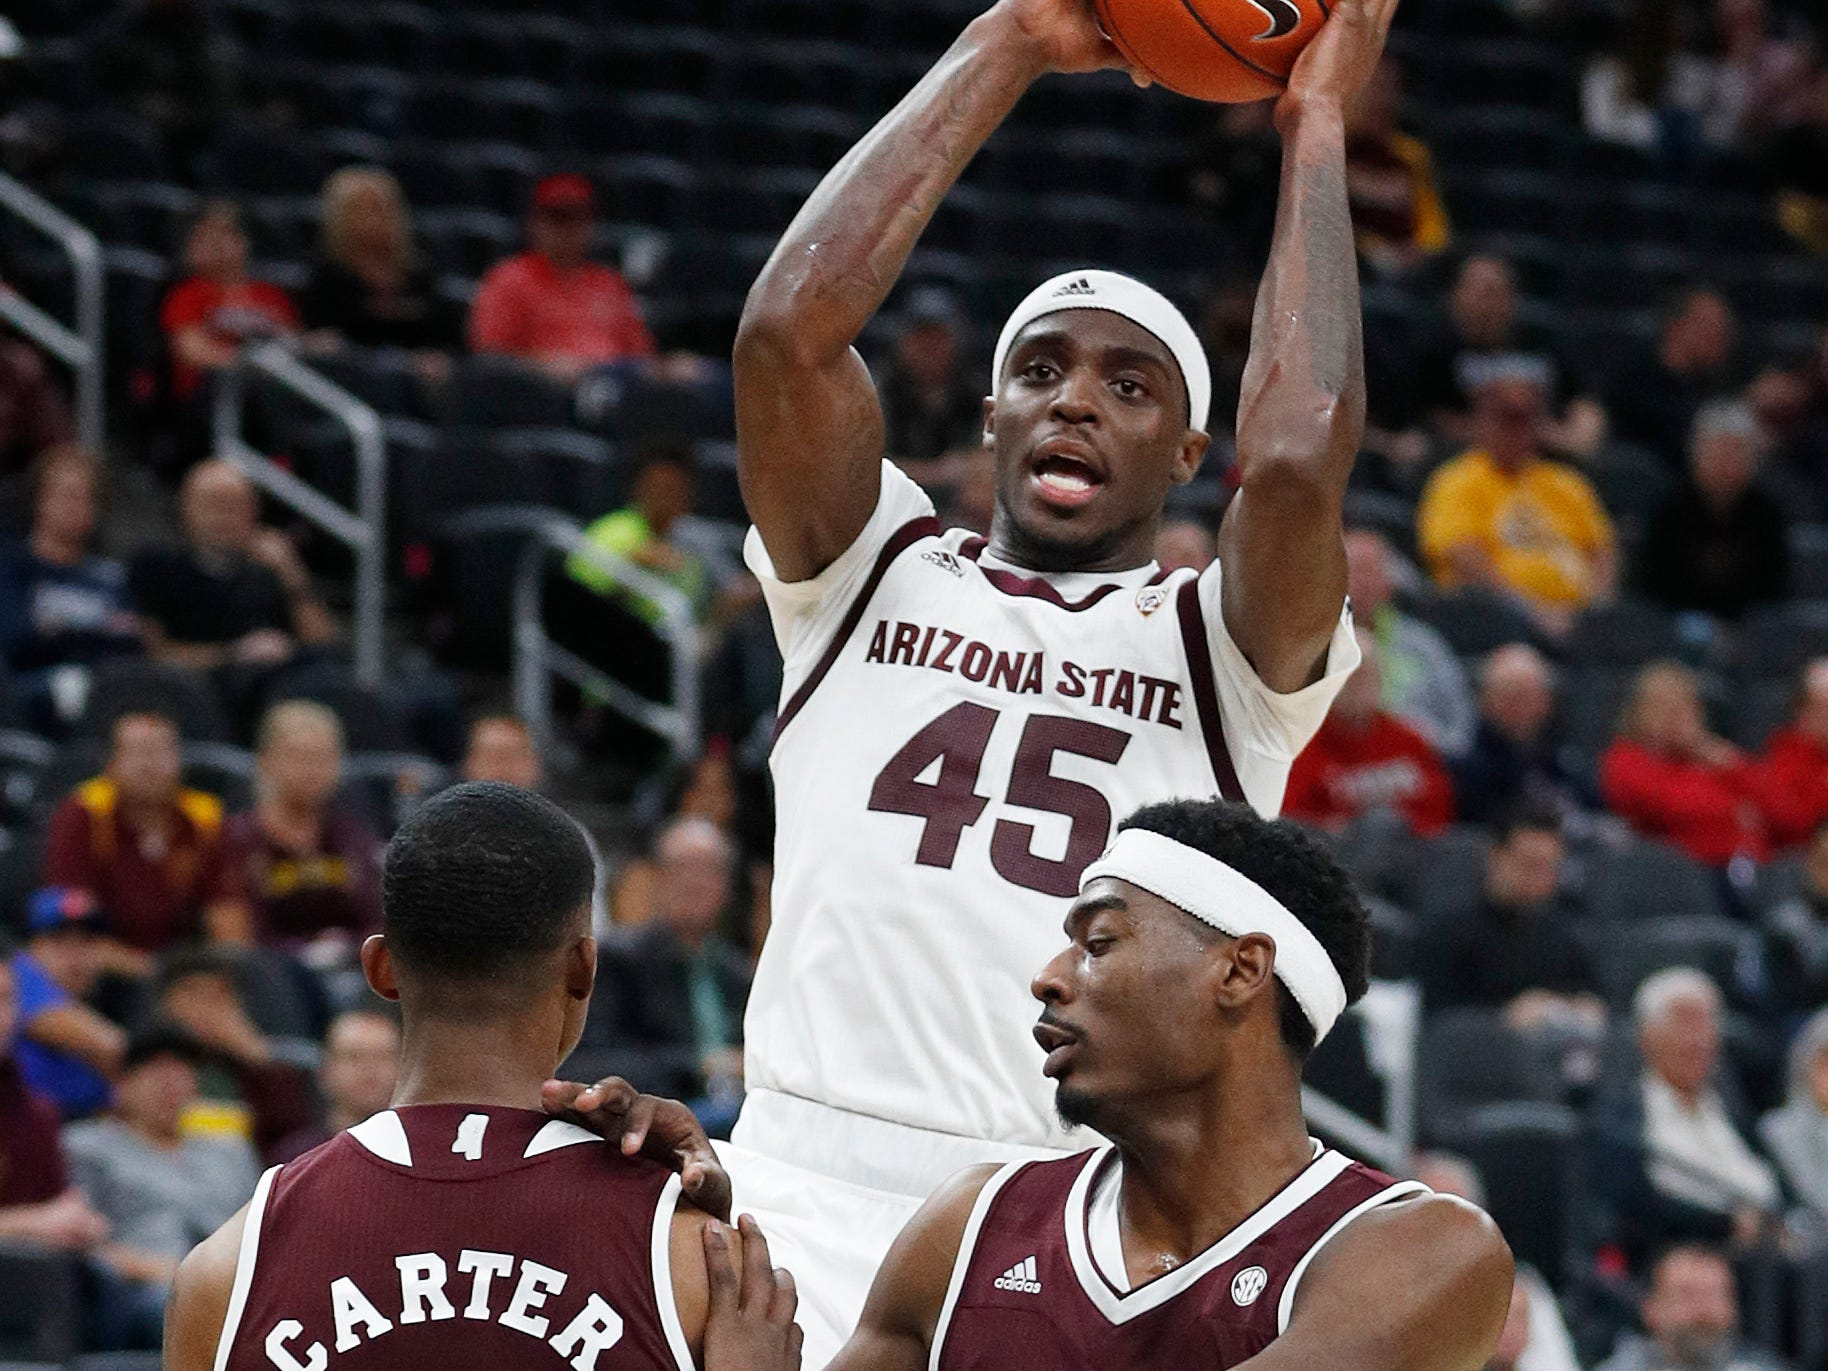 Arizona State's Zylan Cheatham (45) shoots over Mississippi State's Tyson Carter (23) and Aric Holman (35) during the first half of a NCAA college basketball game Monday, Nov. 19, 2018, in Las Vegas. (AP Photo/John Locher)